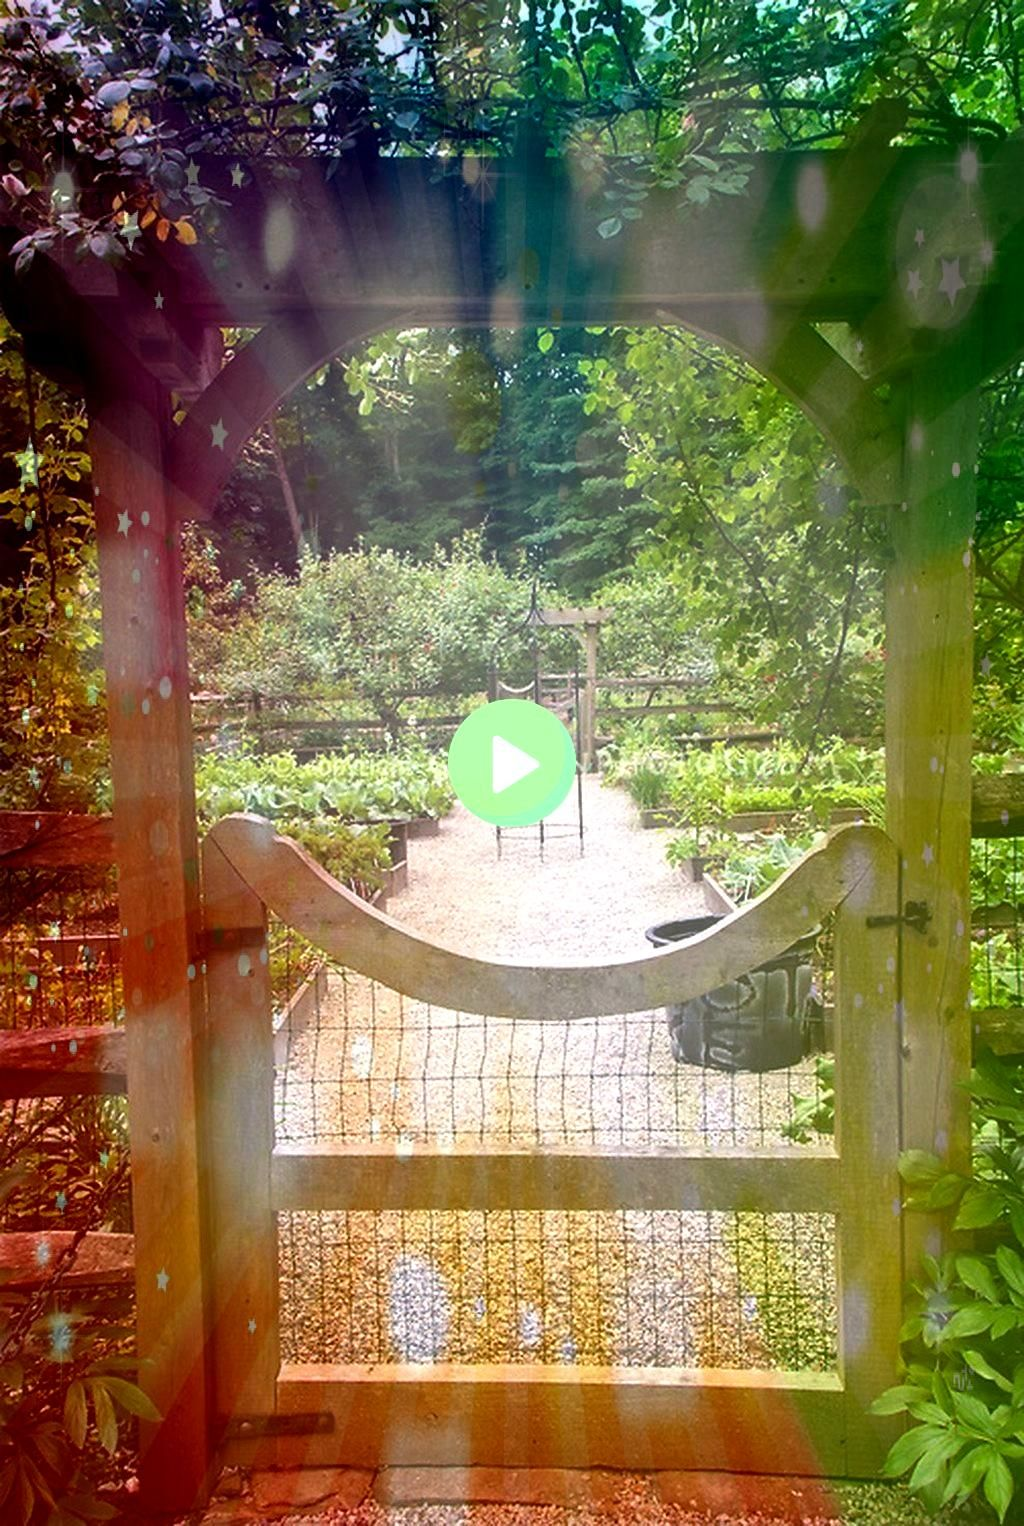 Cool Garden Fence Decoration Ideas To Try This Year20 Cool Garden Fence Decoration Ideas To Try This Year Cedar Greenwich Square Lattice Fence Panel  Atlas Outdoor Projek...